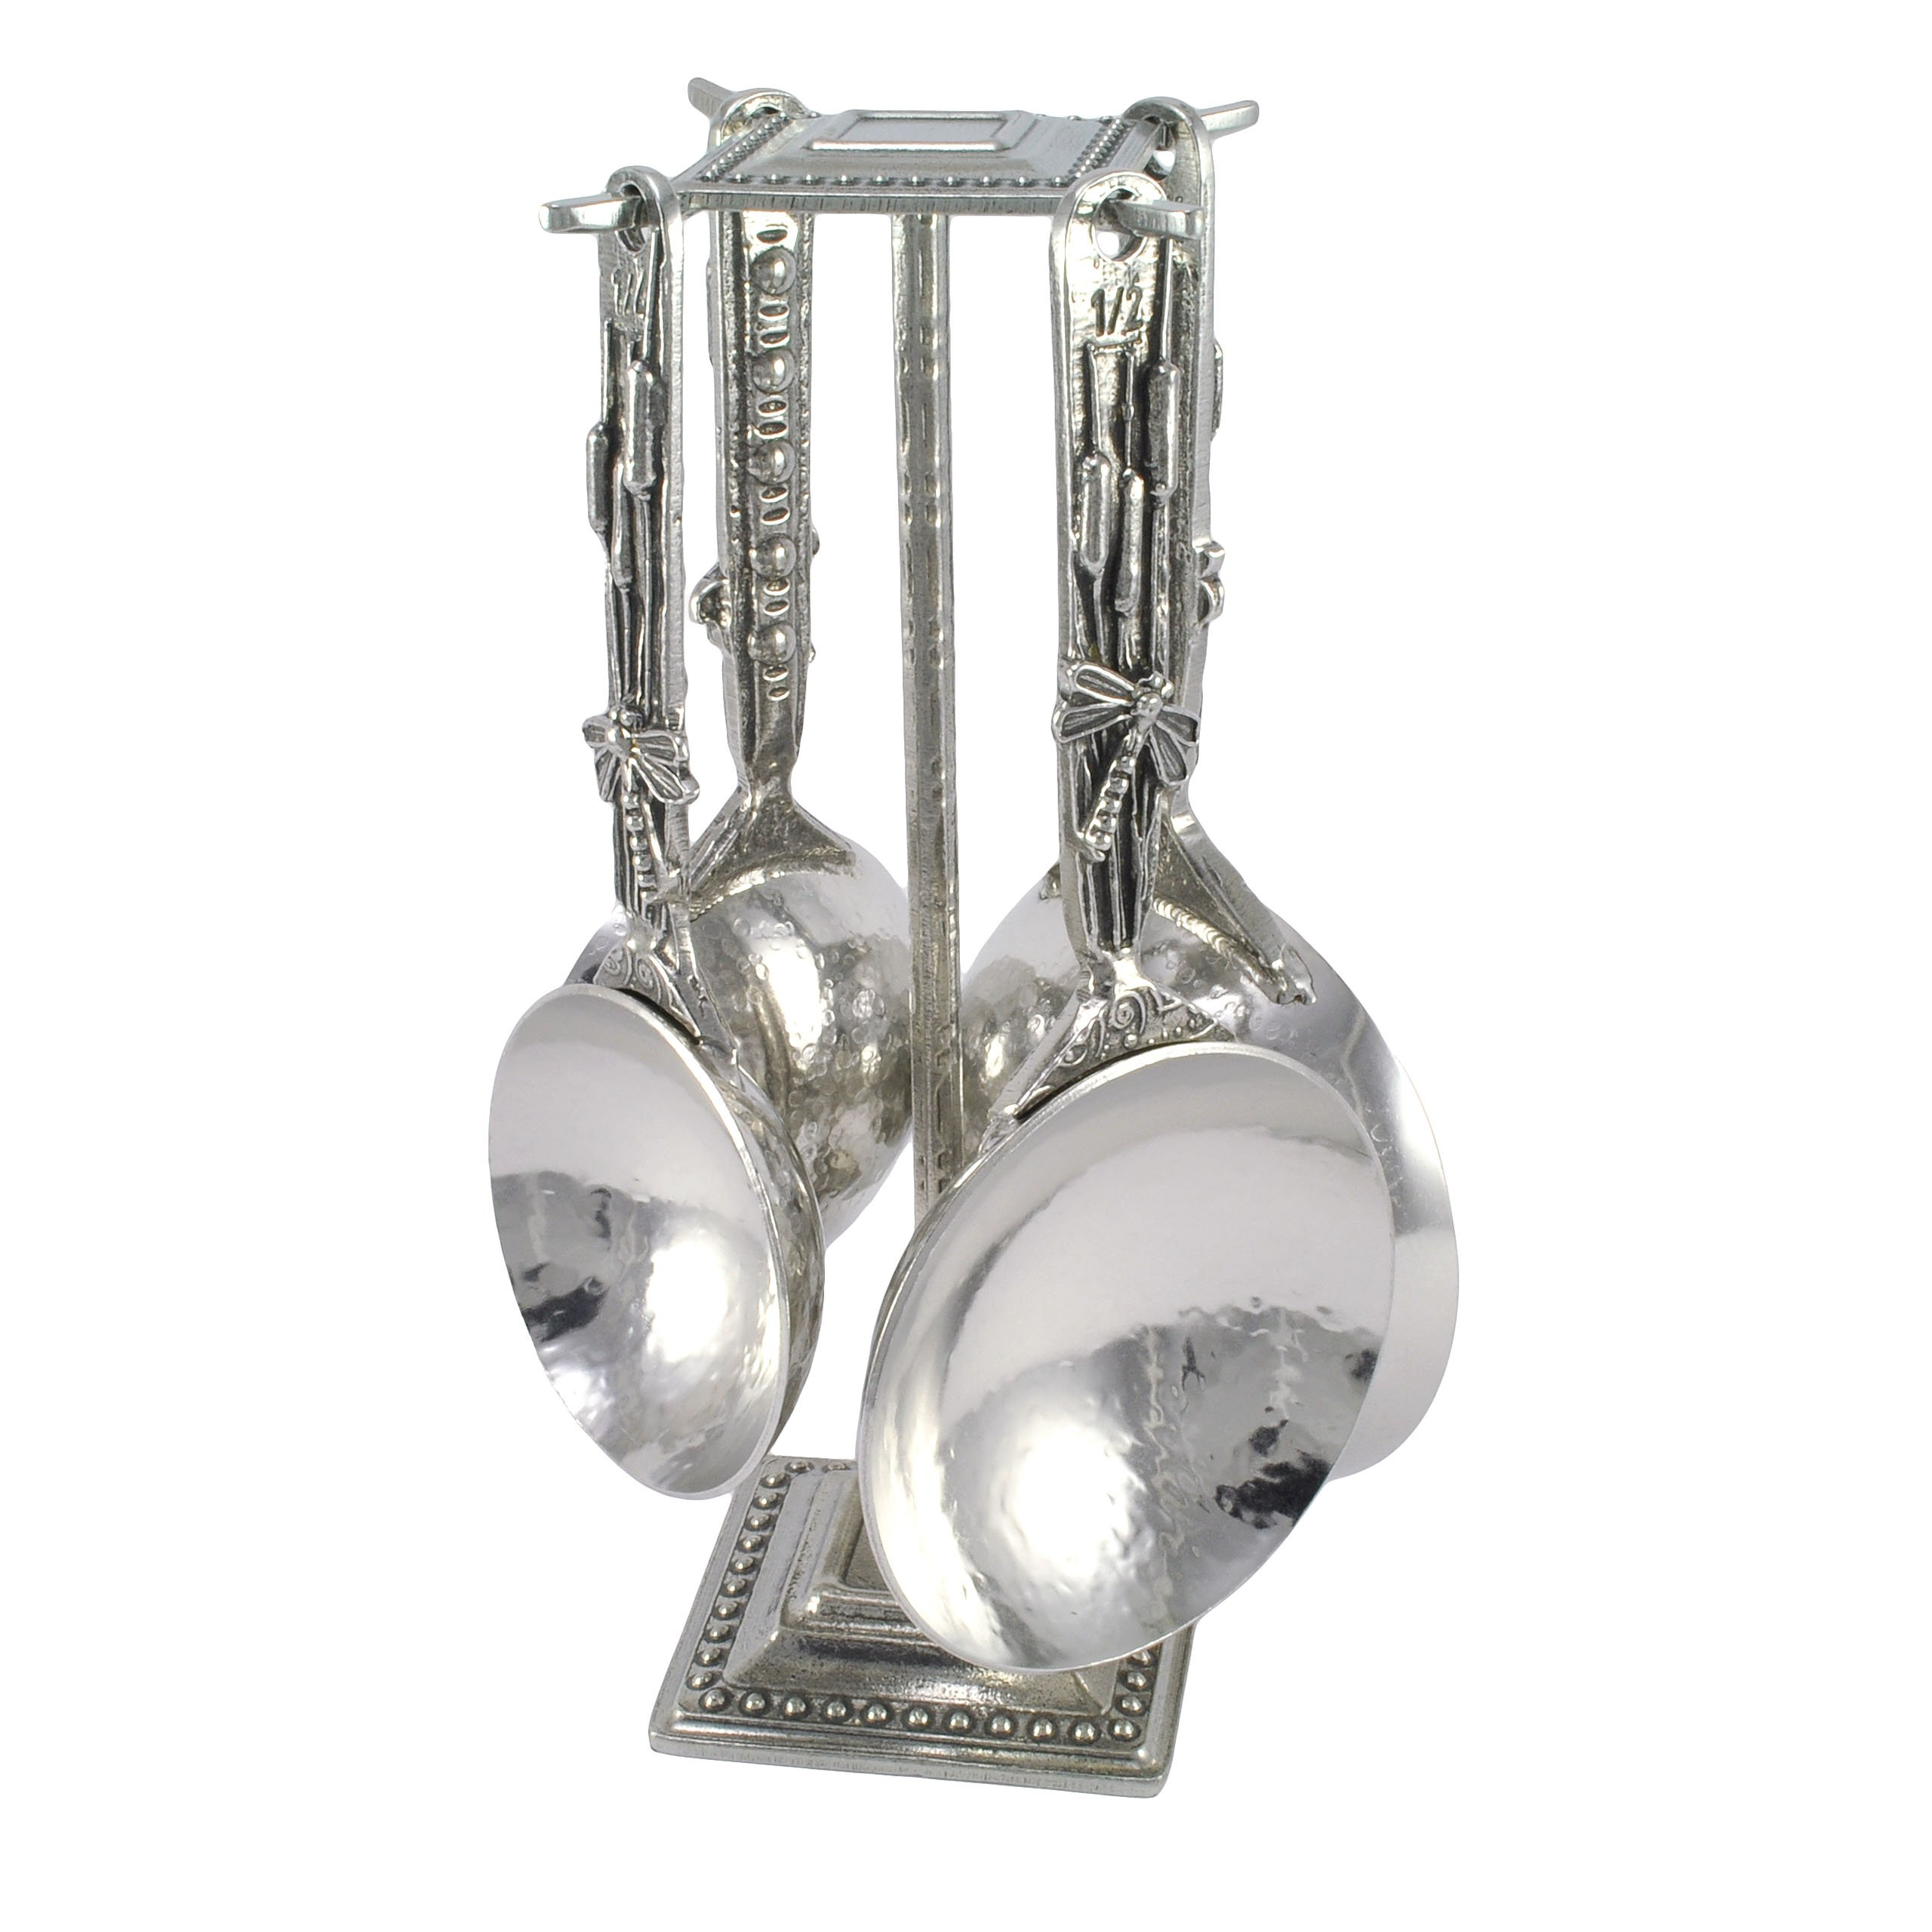 Crosby & Taylor Dragonfly Pewter Measuring Cups with Display Post